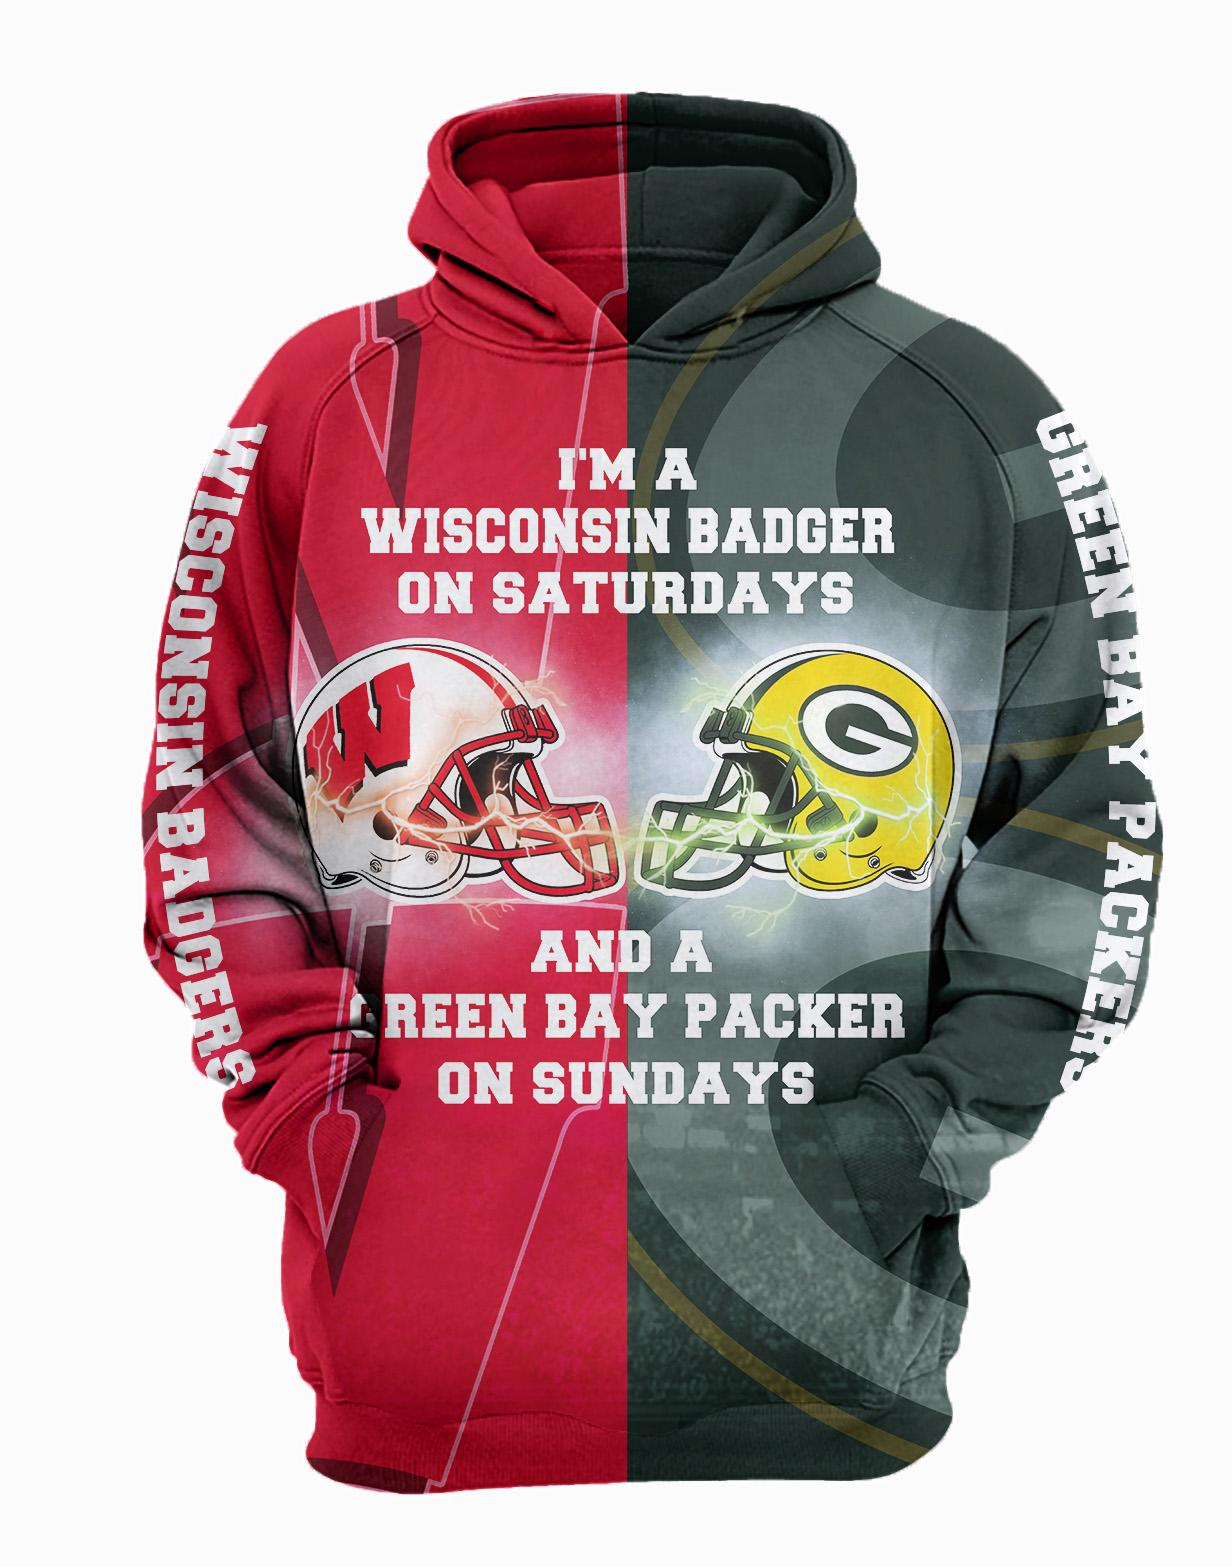 I'm a wisconsin badgers on saturdays and a green bay packers on sundays 3d hoodie - maria